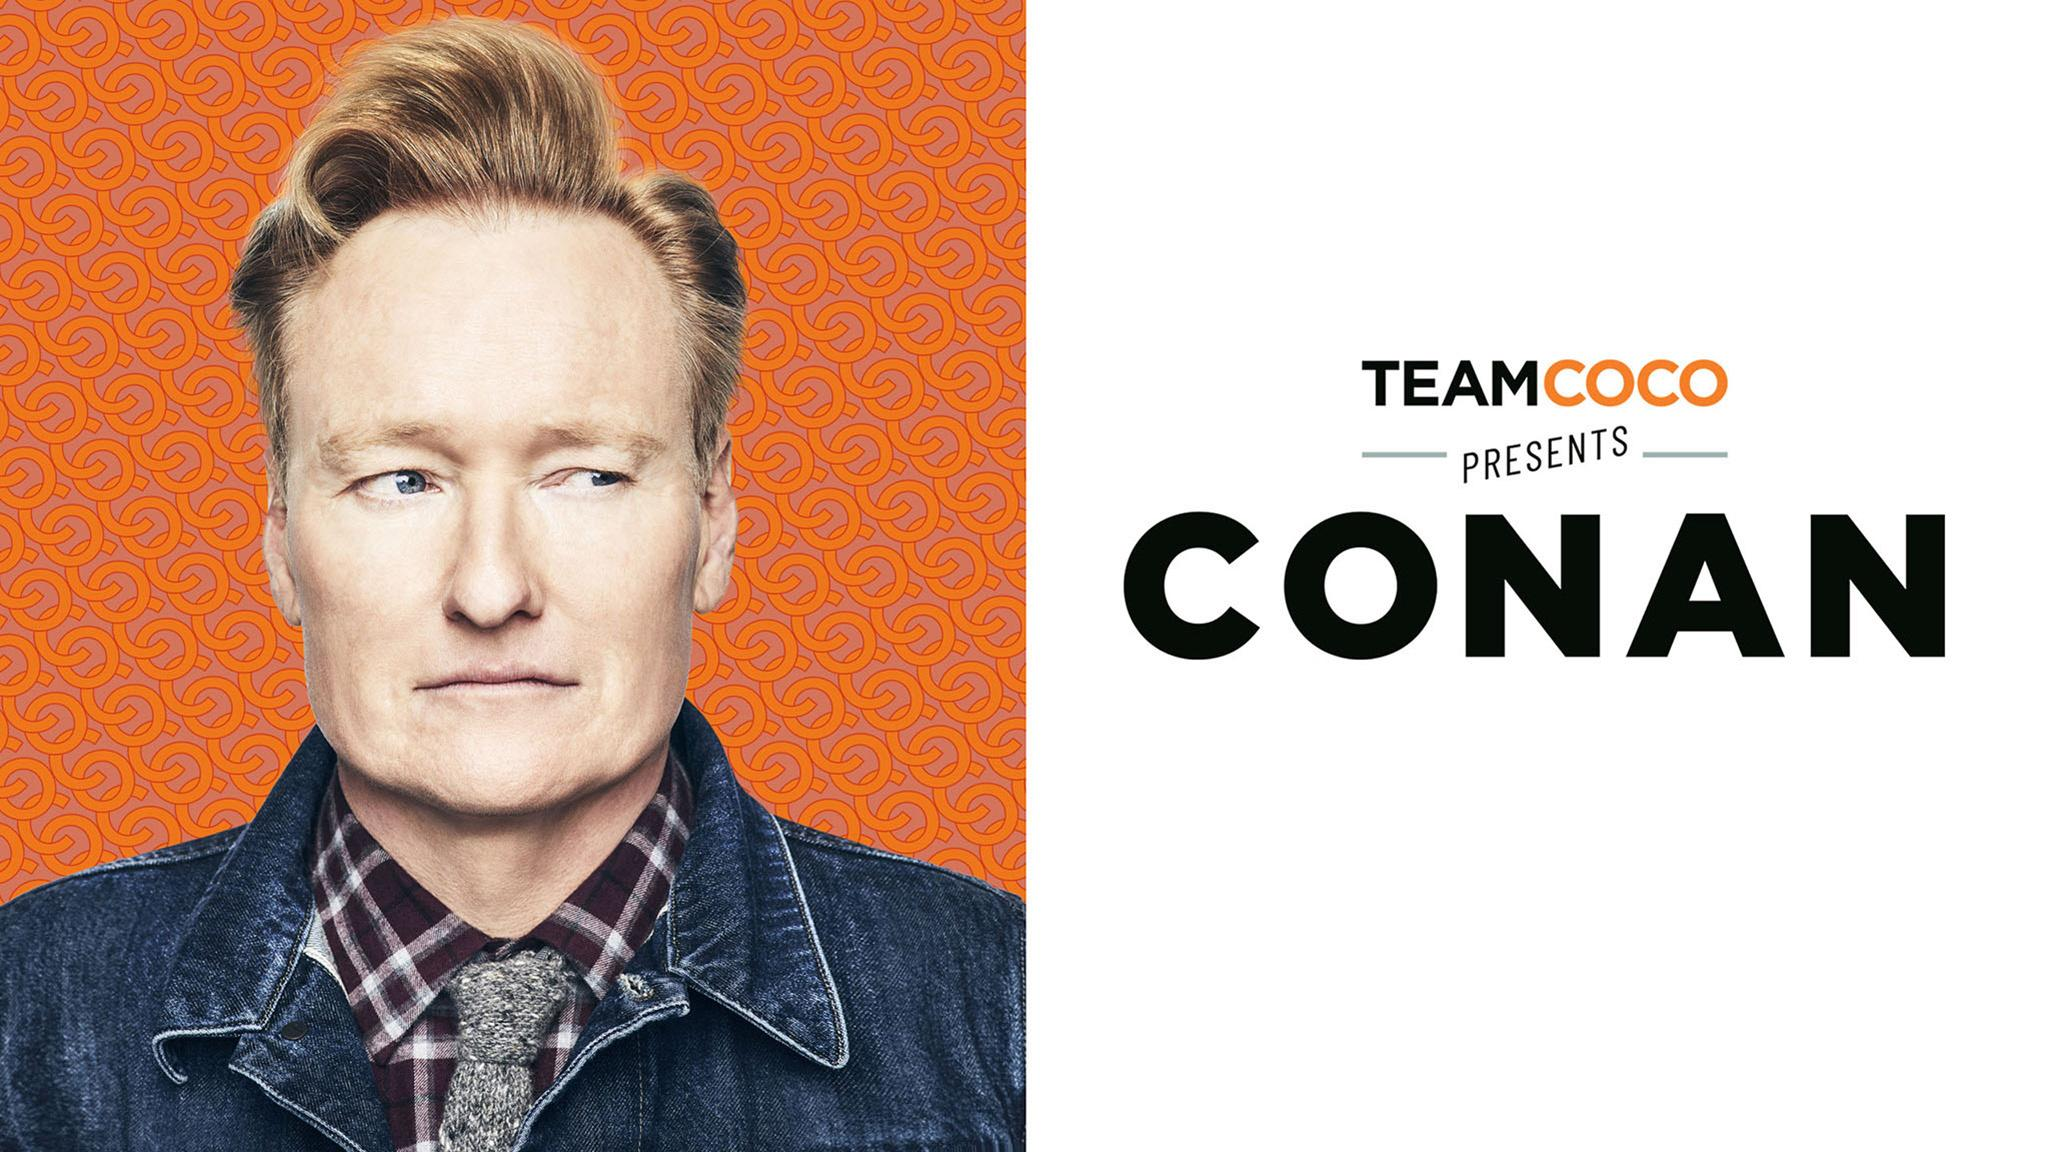 Stream And Watch Conan Online Sling Tv